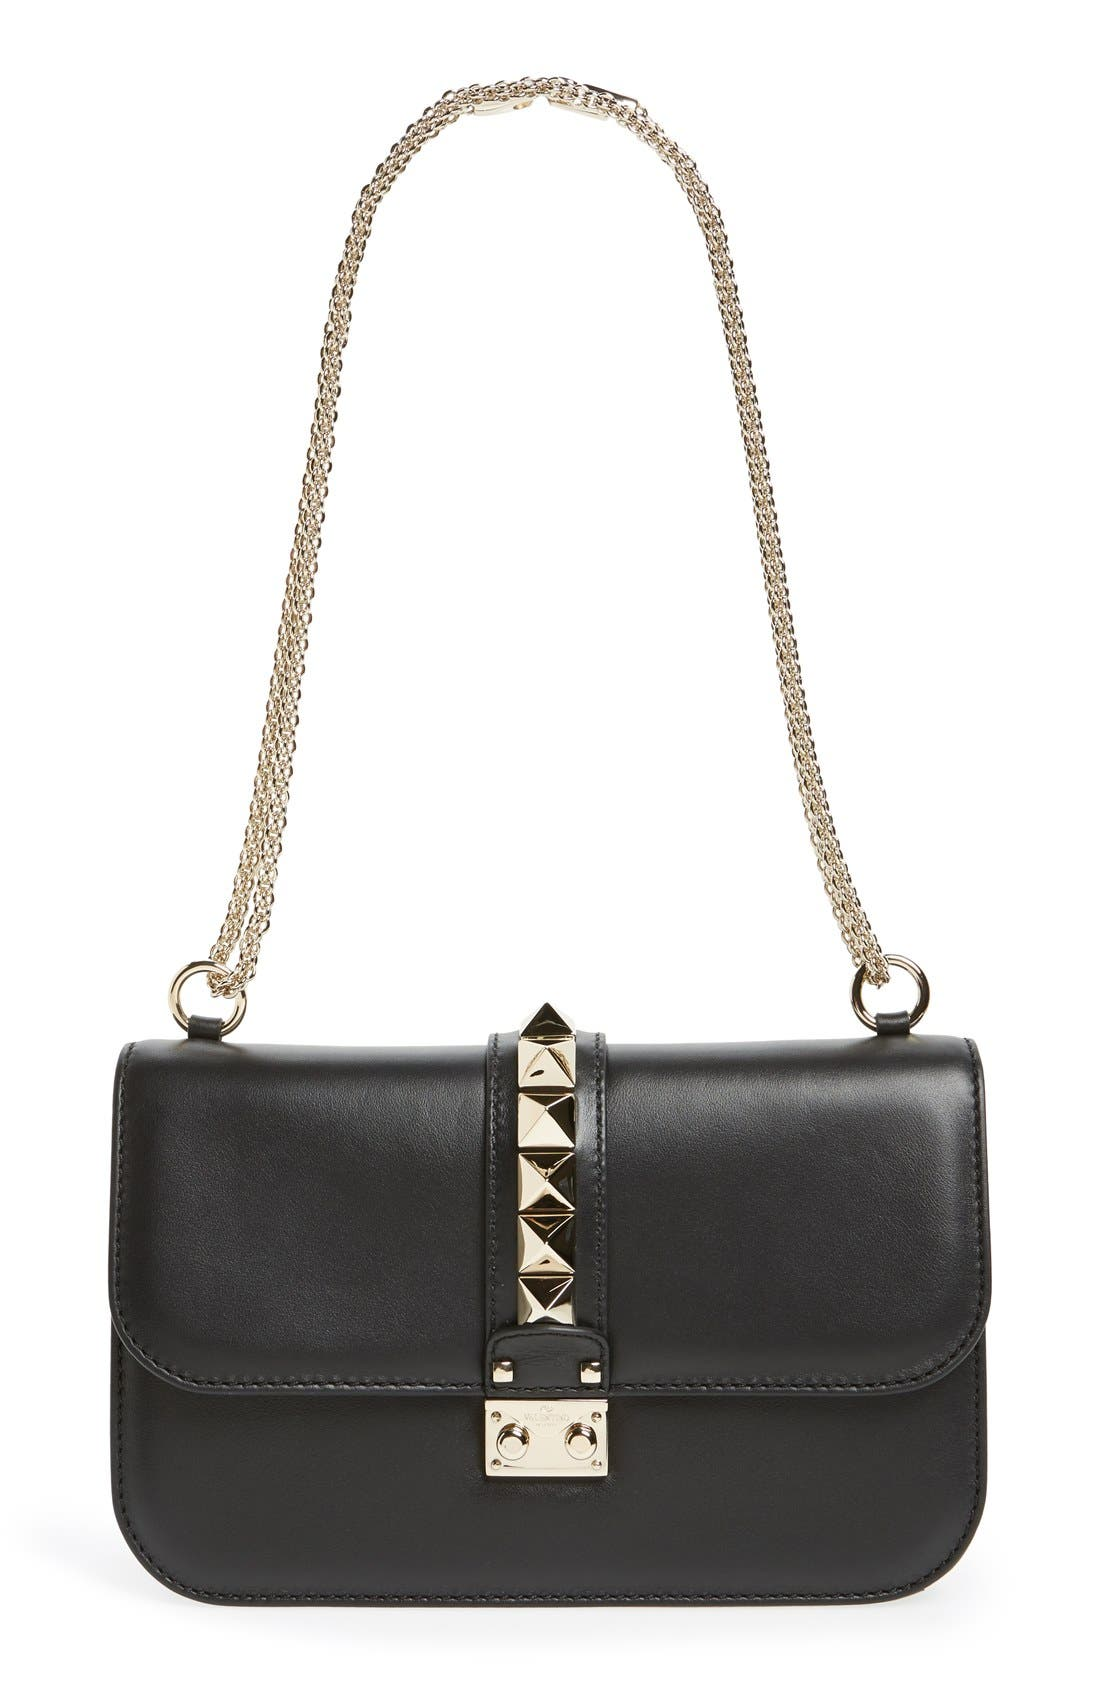 VALENTINO GARAVANI Medium Lock Shoulder Bag